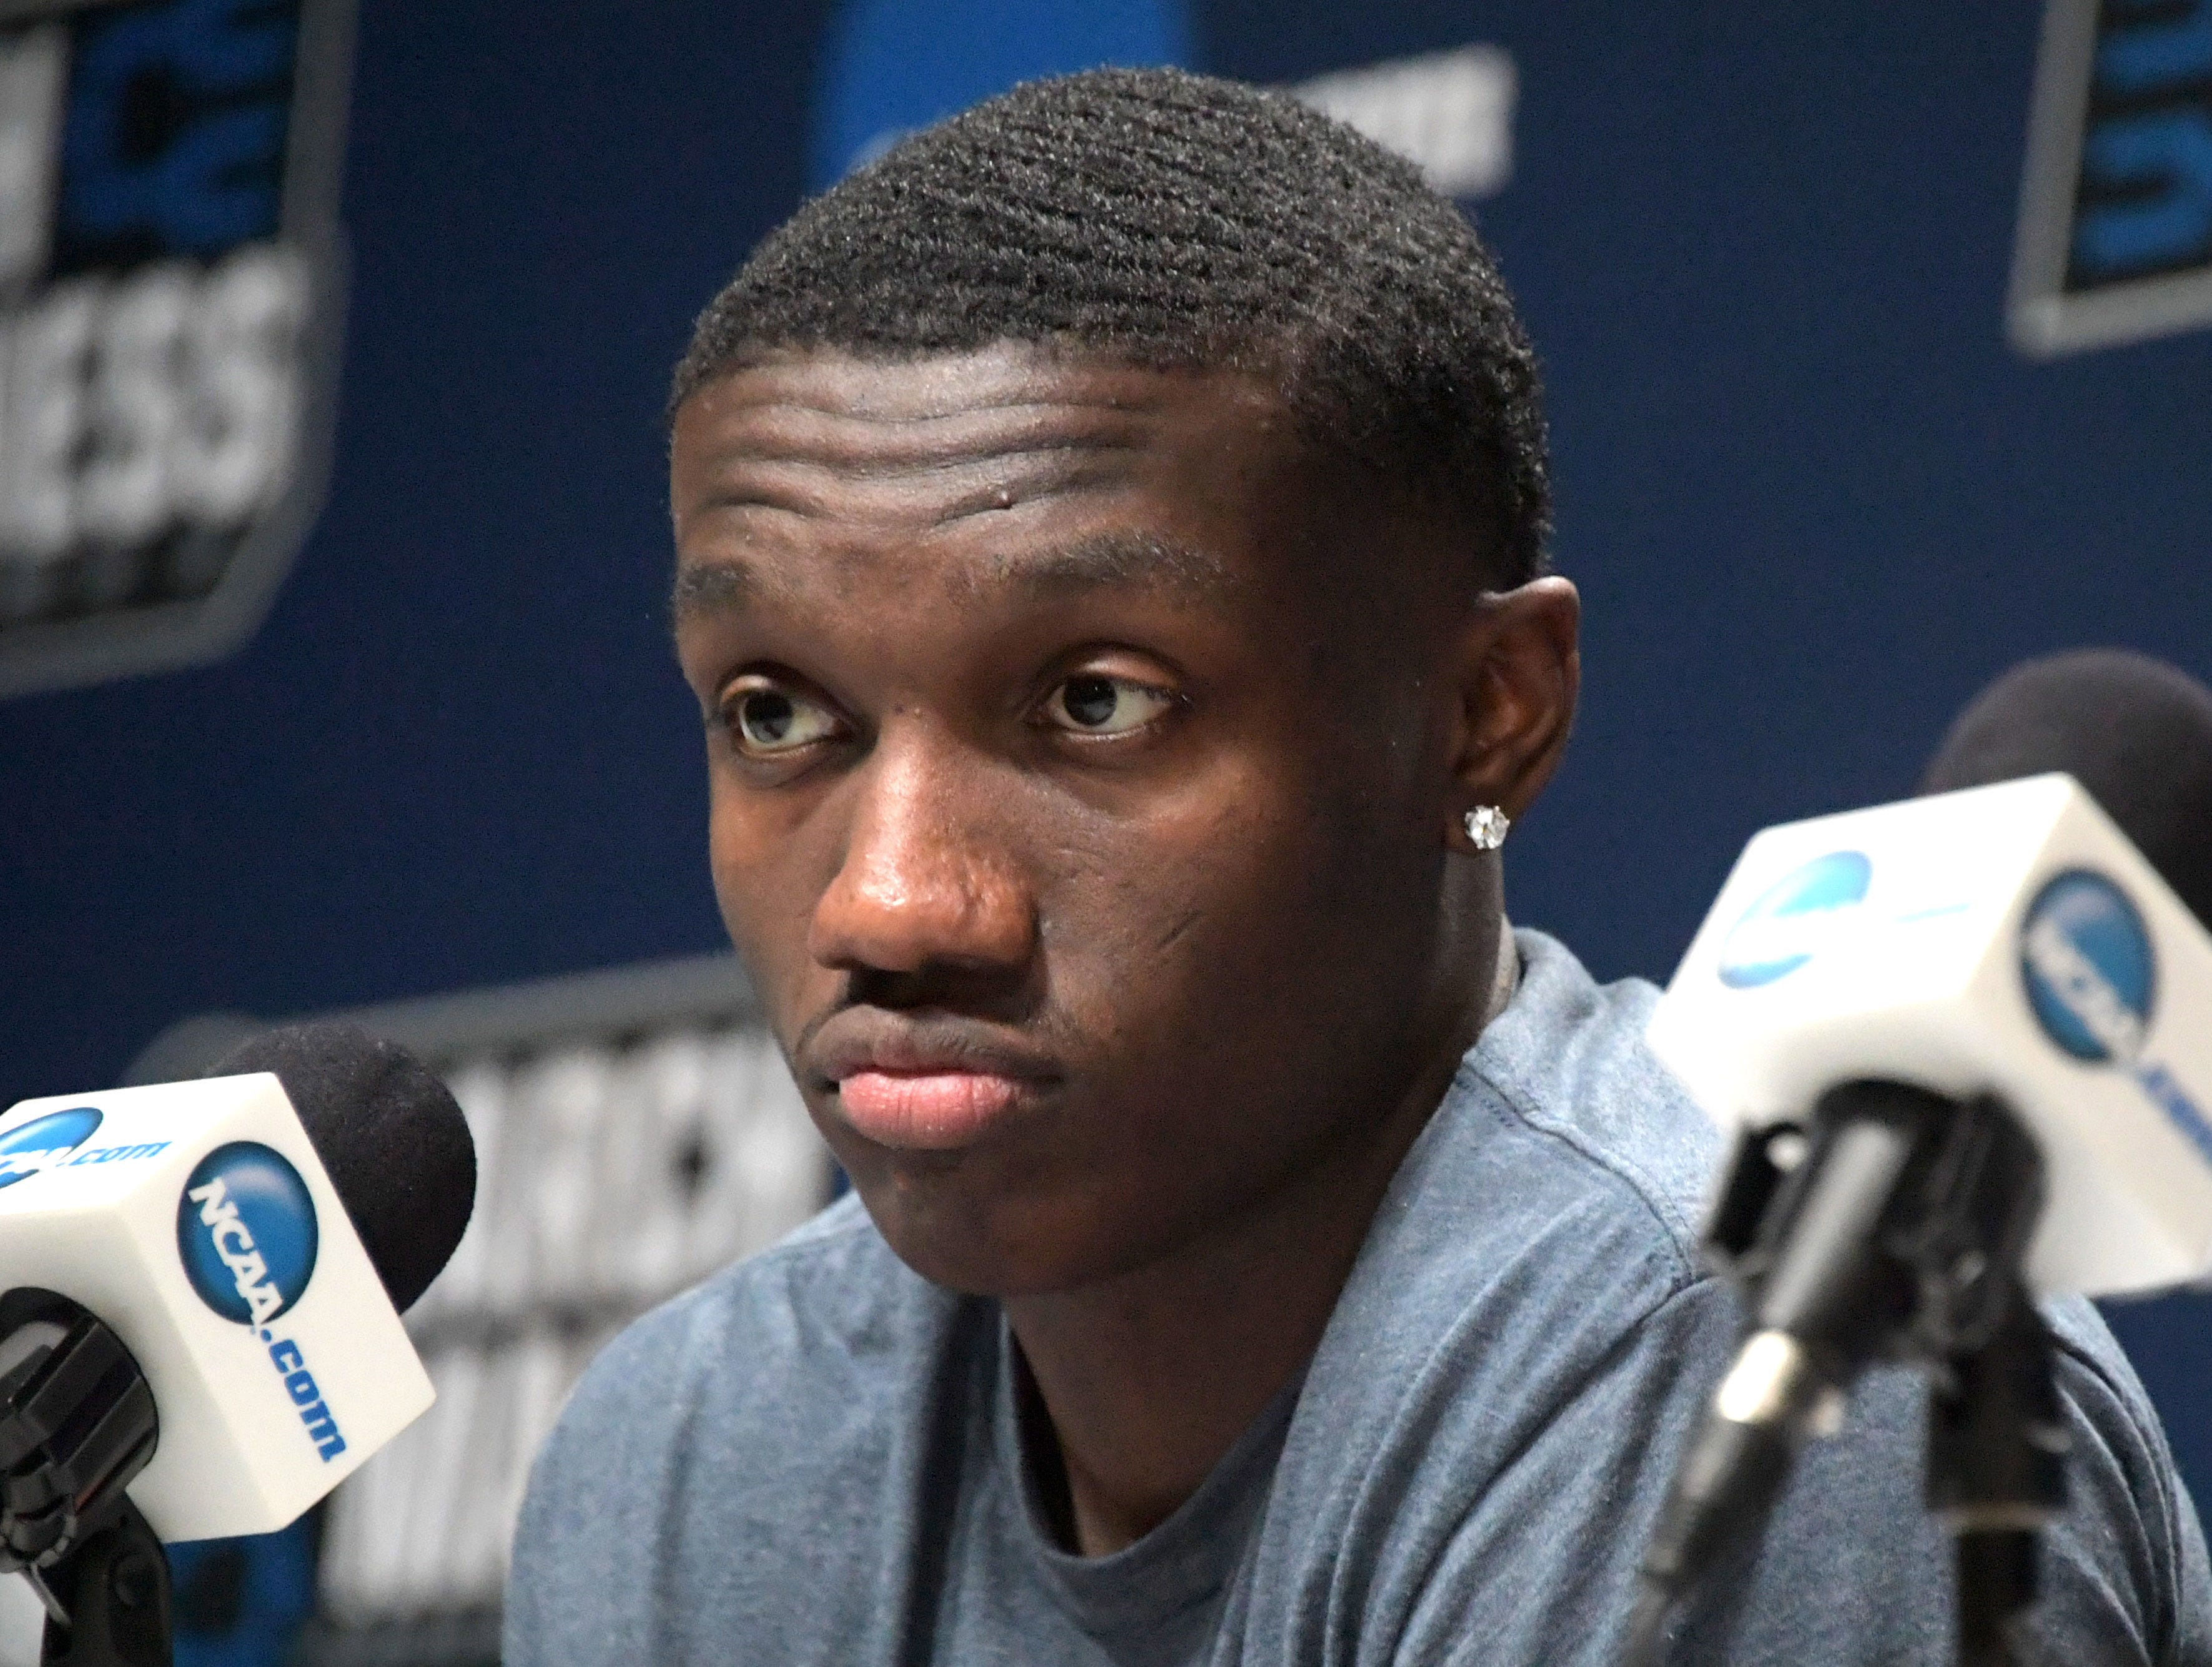 Mar 20, 2019; Salt Lake City, UT, USA; Auburn Tigers guard Jared Harper during a press conference before the first round of the 2019 NCAA Tournament at Vivint Smart Home Arena. Mandatory Credit: Kirby Lee-USA TODAY Sports